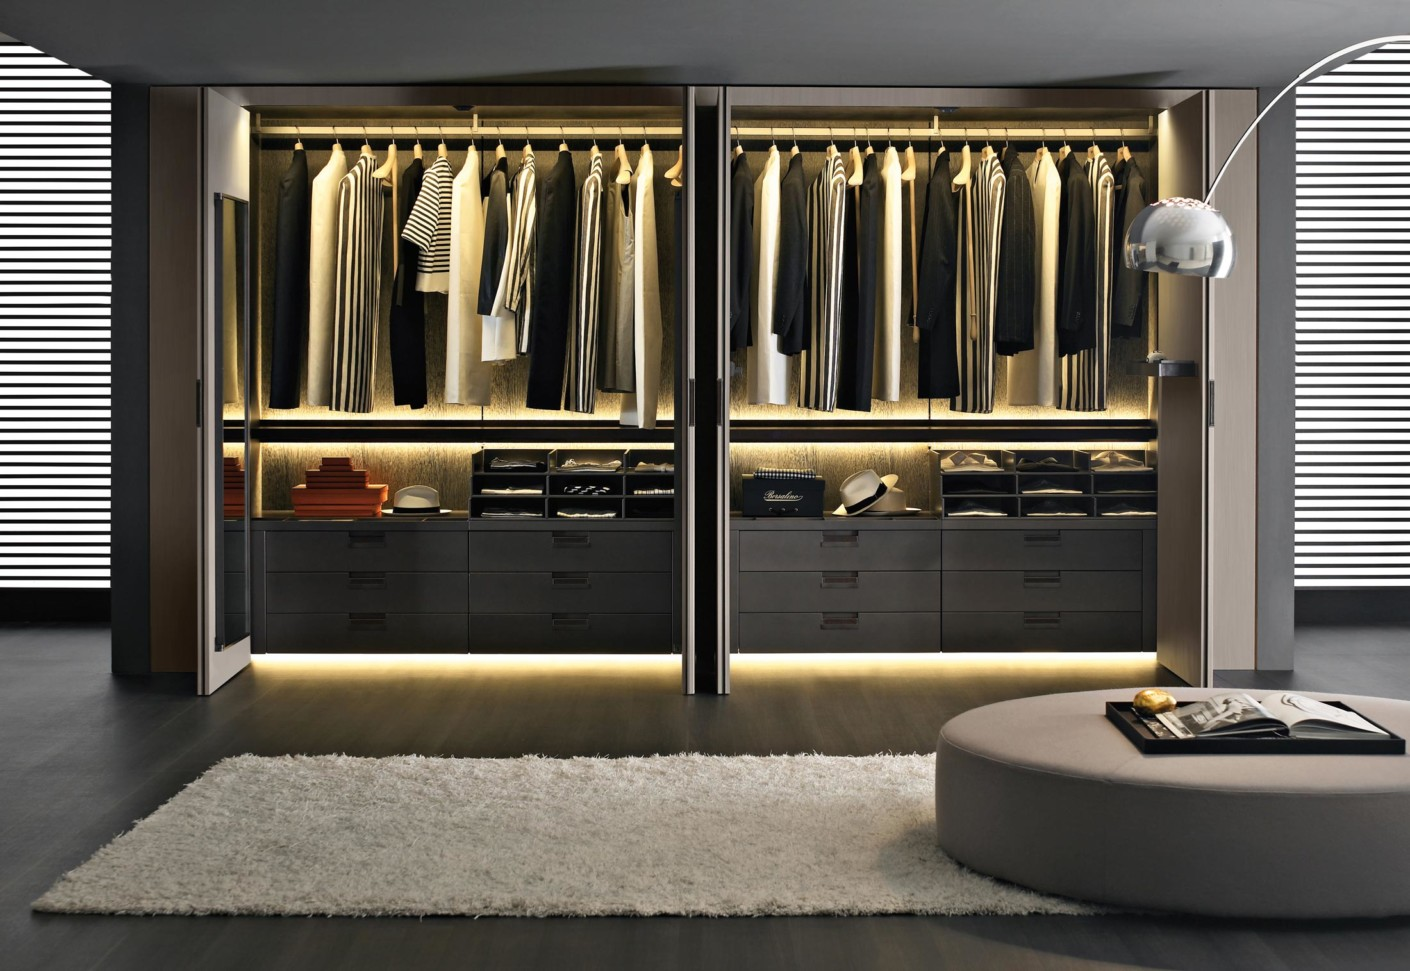 Bar Top Tables Backstage Wall Closet By B&b Italia | Stylepark